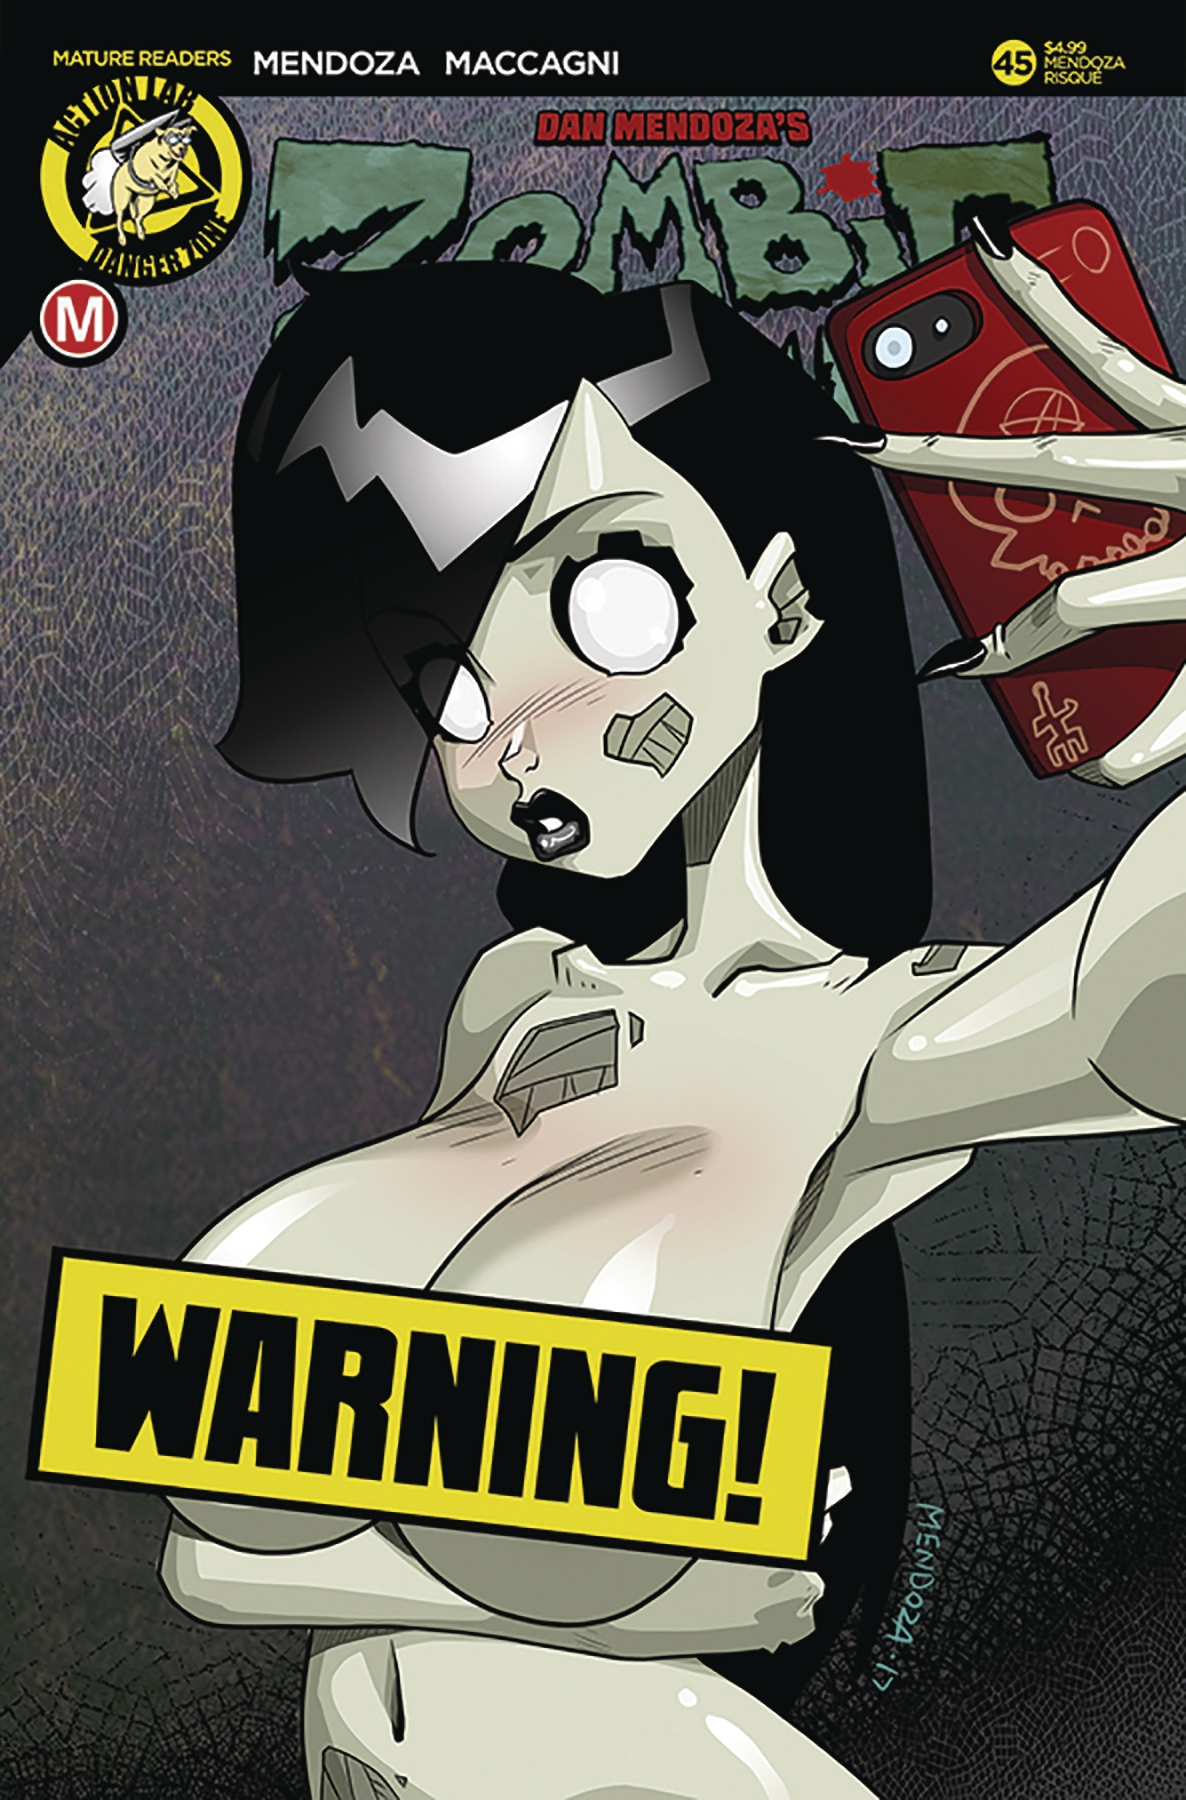 ZOMBIE TRAMP ONGOING #45 CVR F MENDOZA RISQUE (MR)